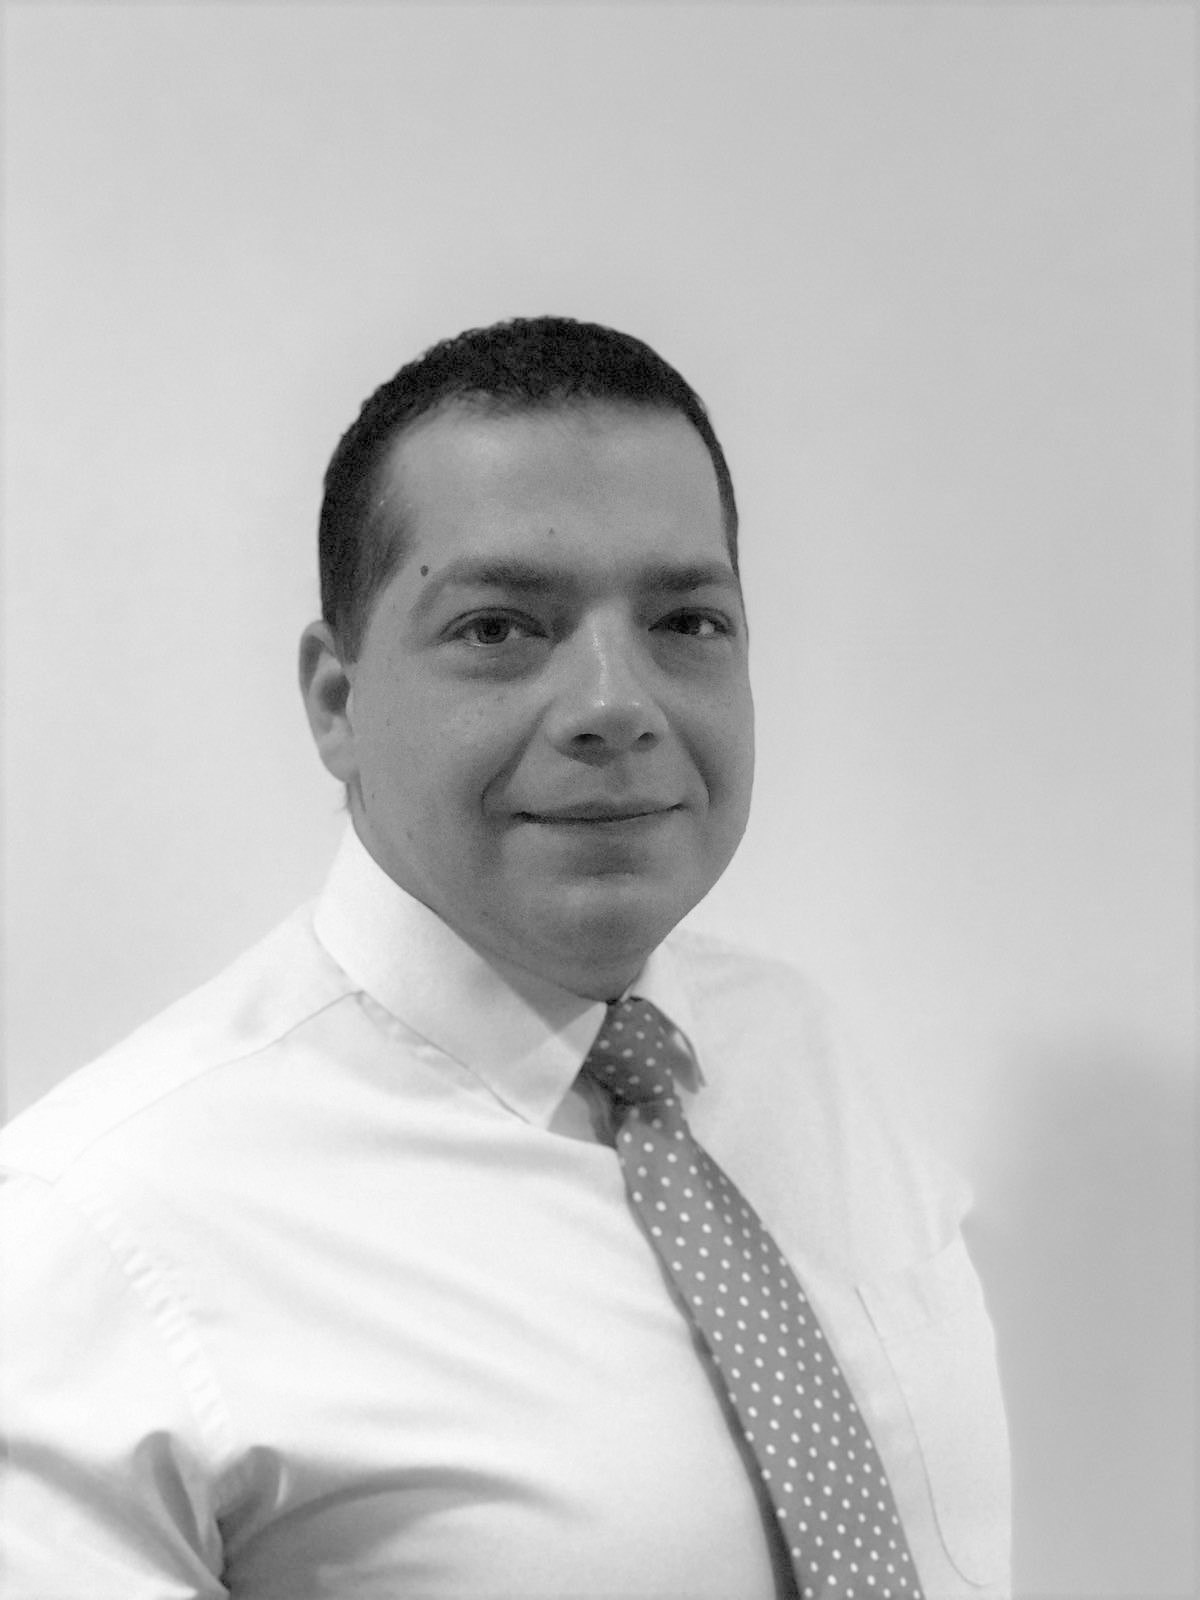 Daniele Occhibianchi, Security and Support Agent